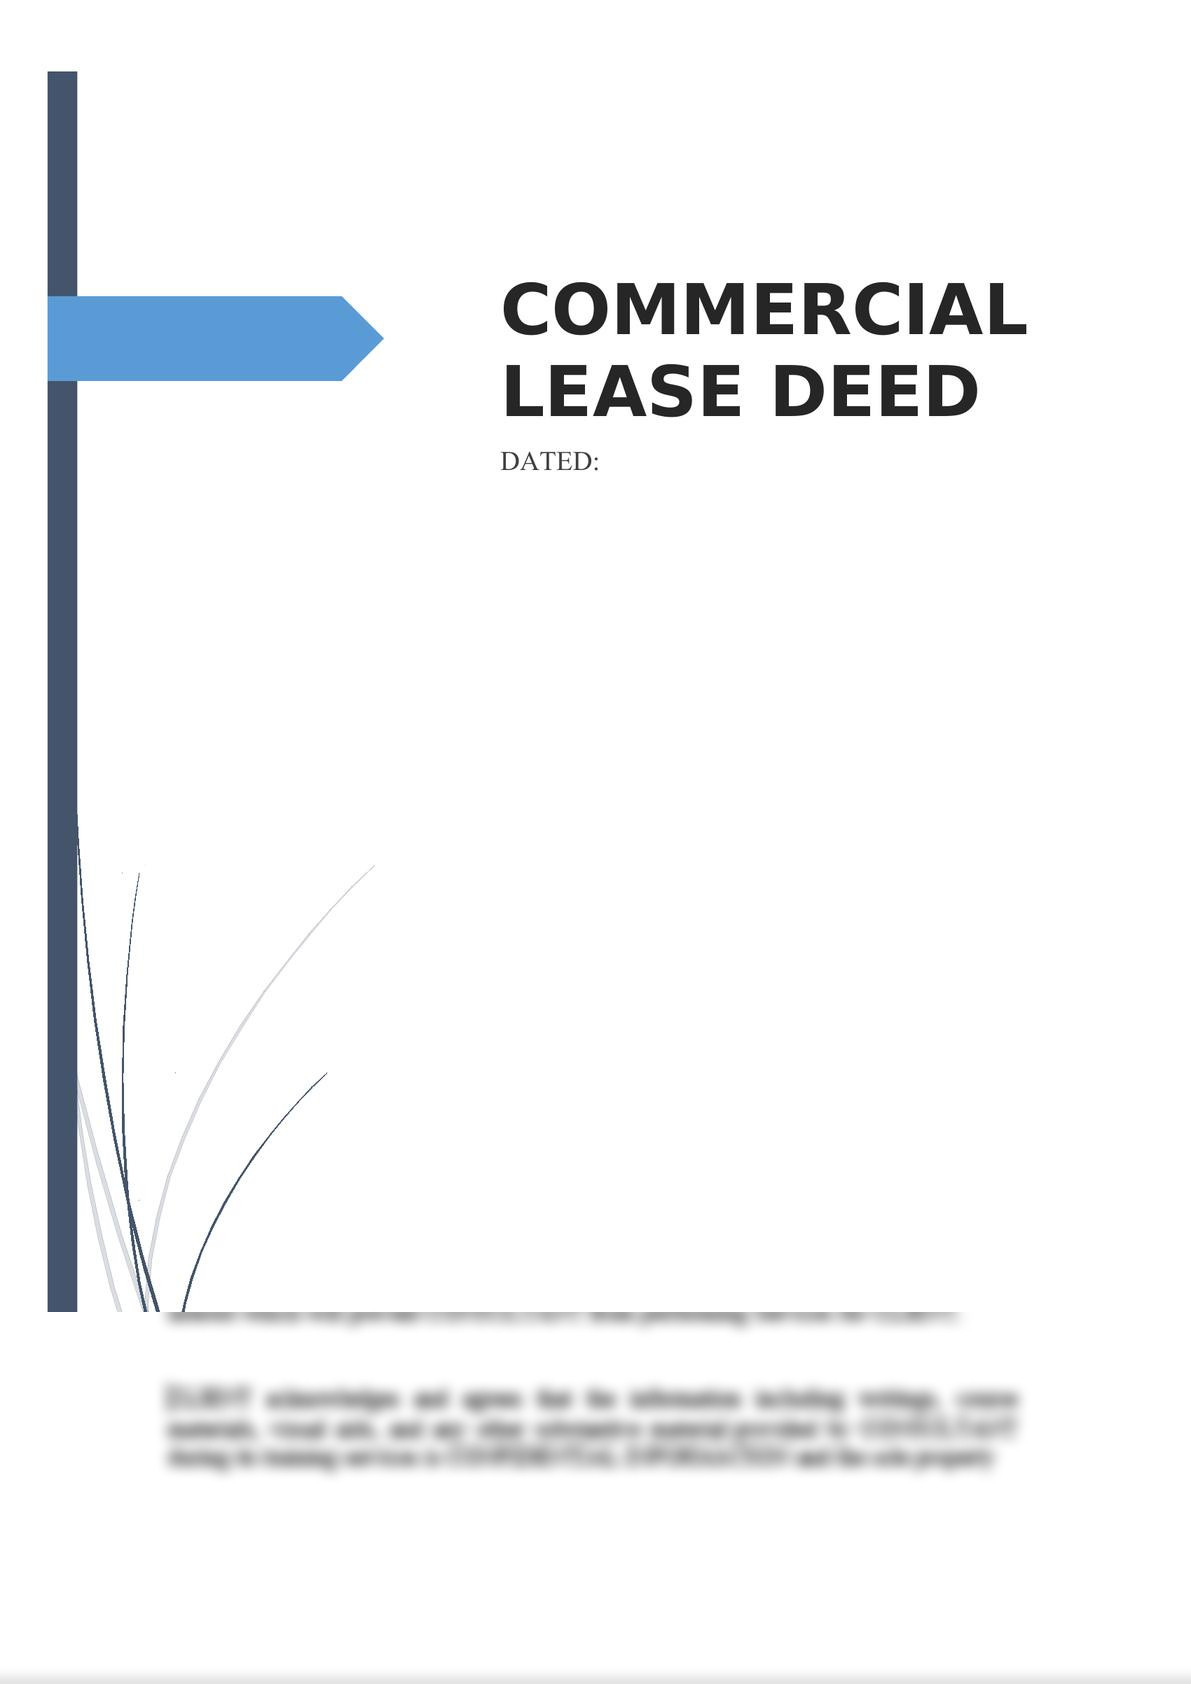 Commercial Lease Deed-0